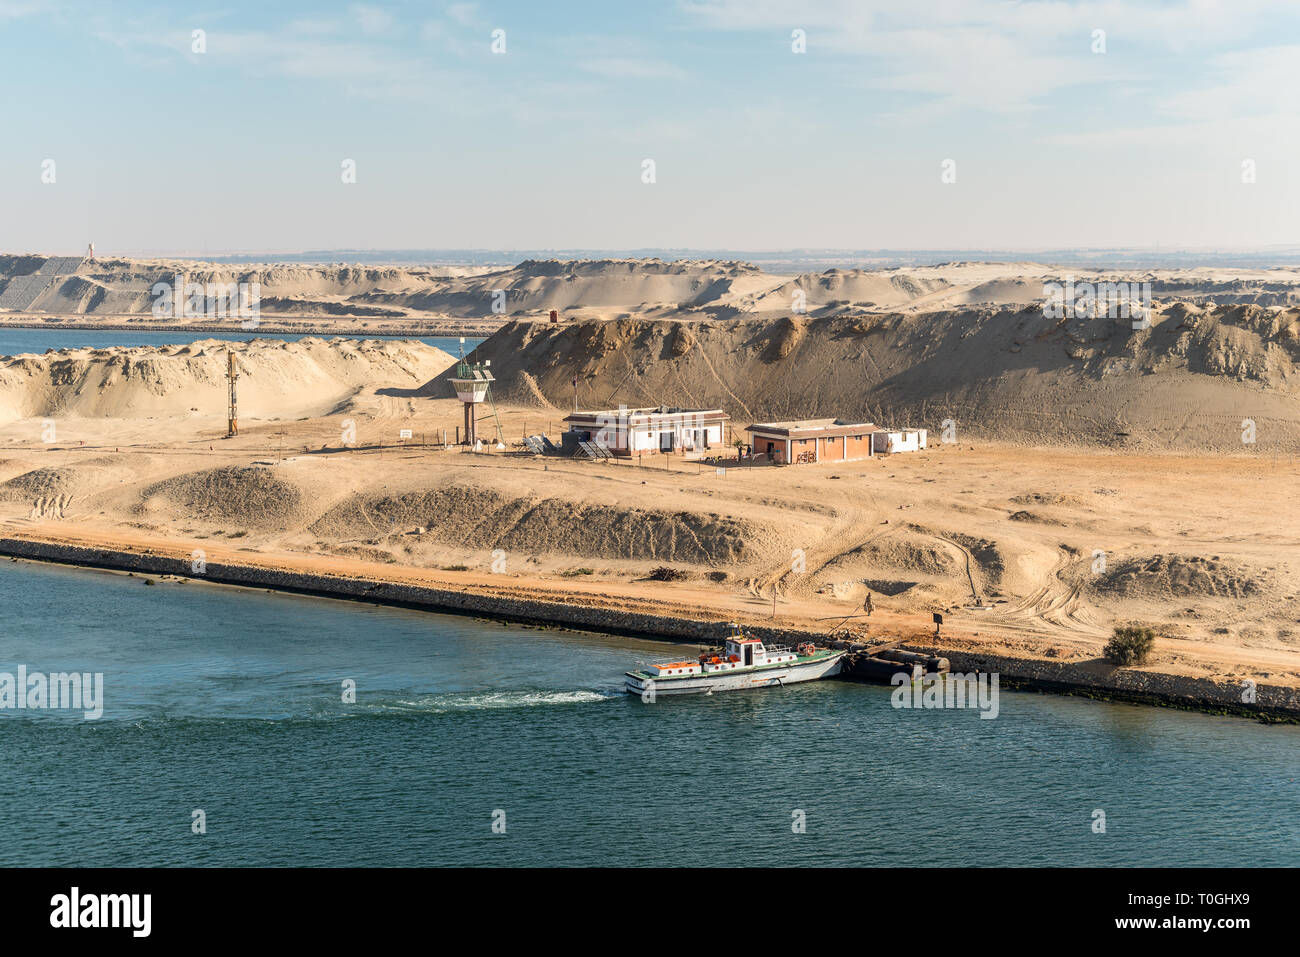 Al Firdan, Egypt - November 5, 2017: Military watch tower and built on the island in the middle of the Suez Canal near Ismailia, Egypt, Africa. - Stock Image